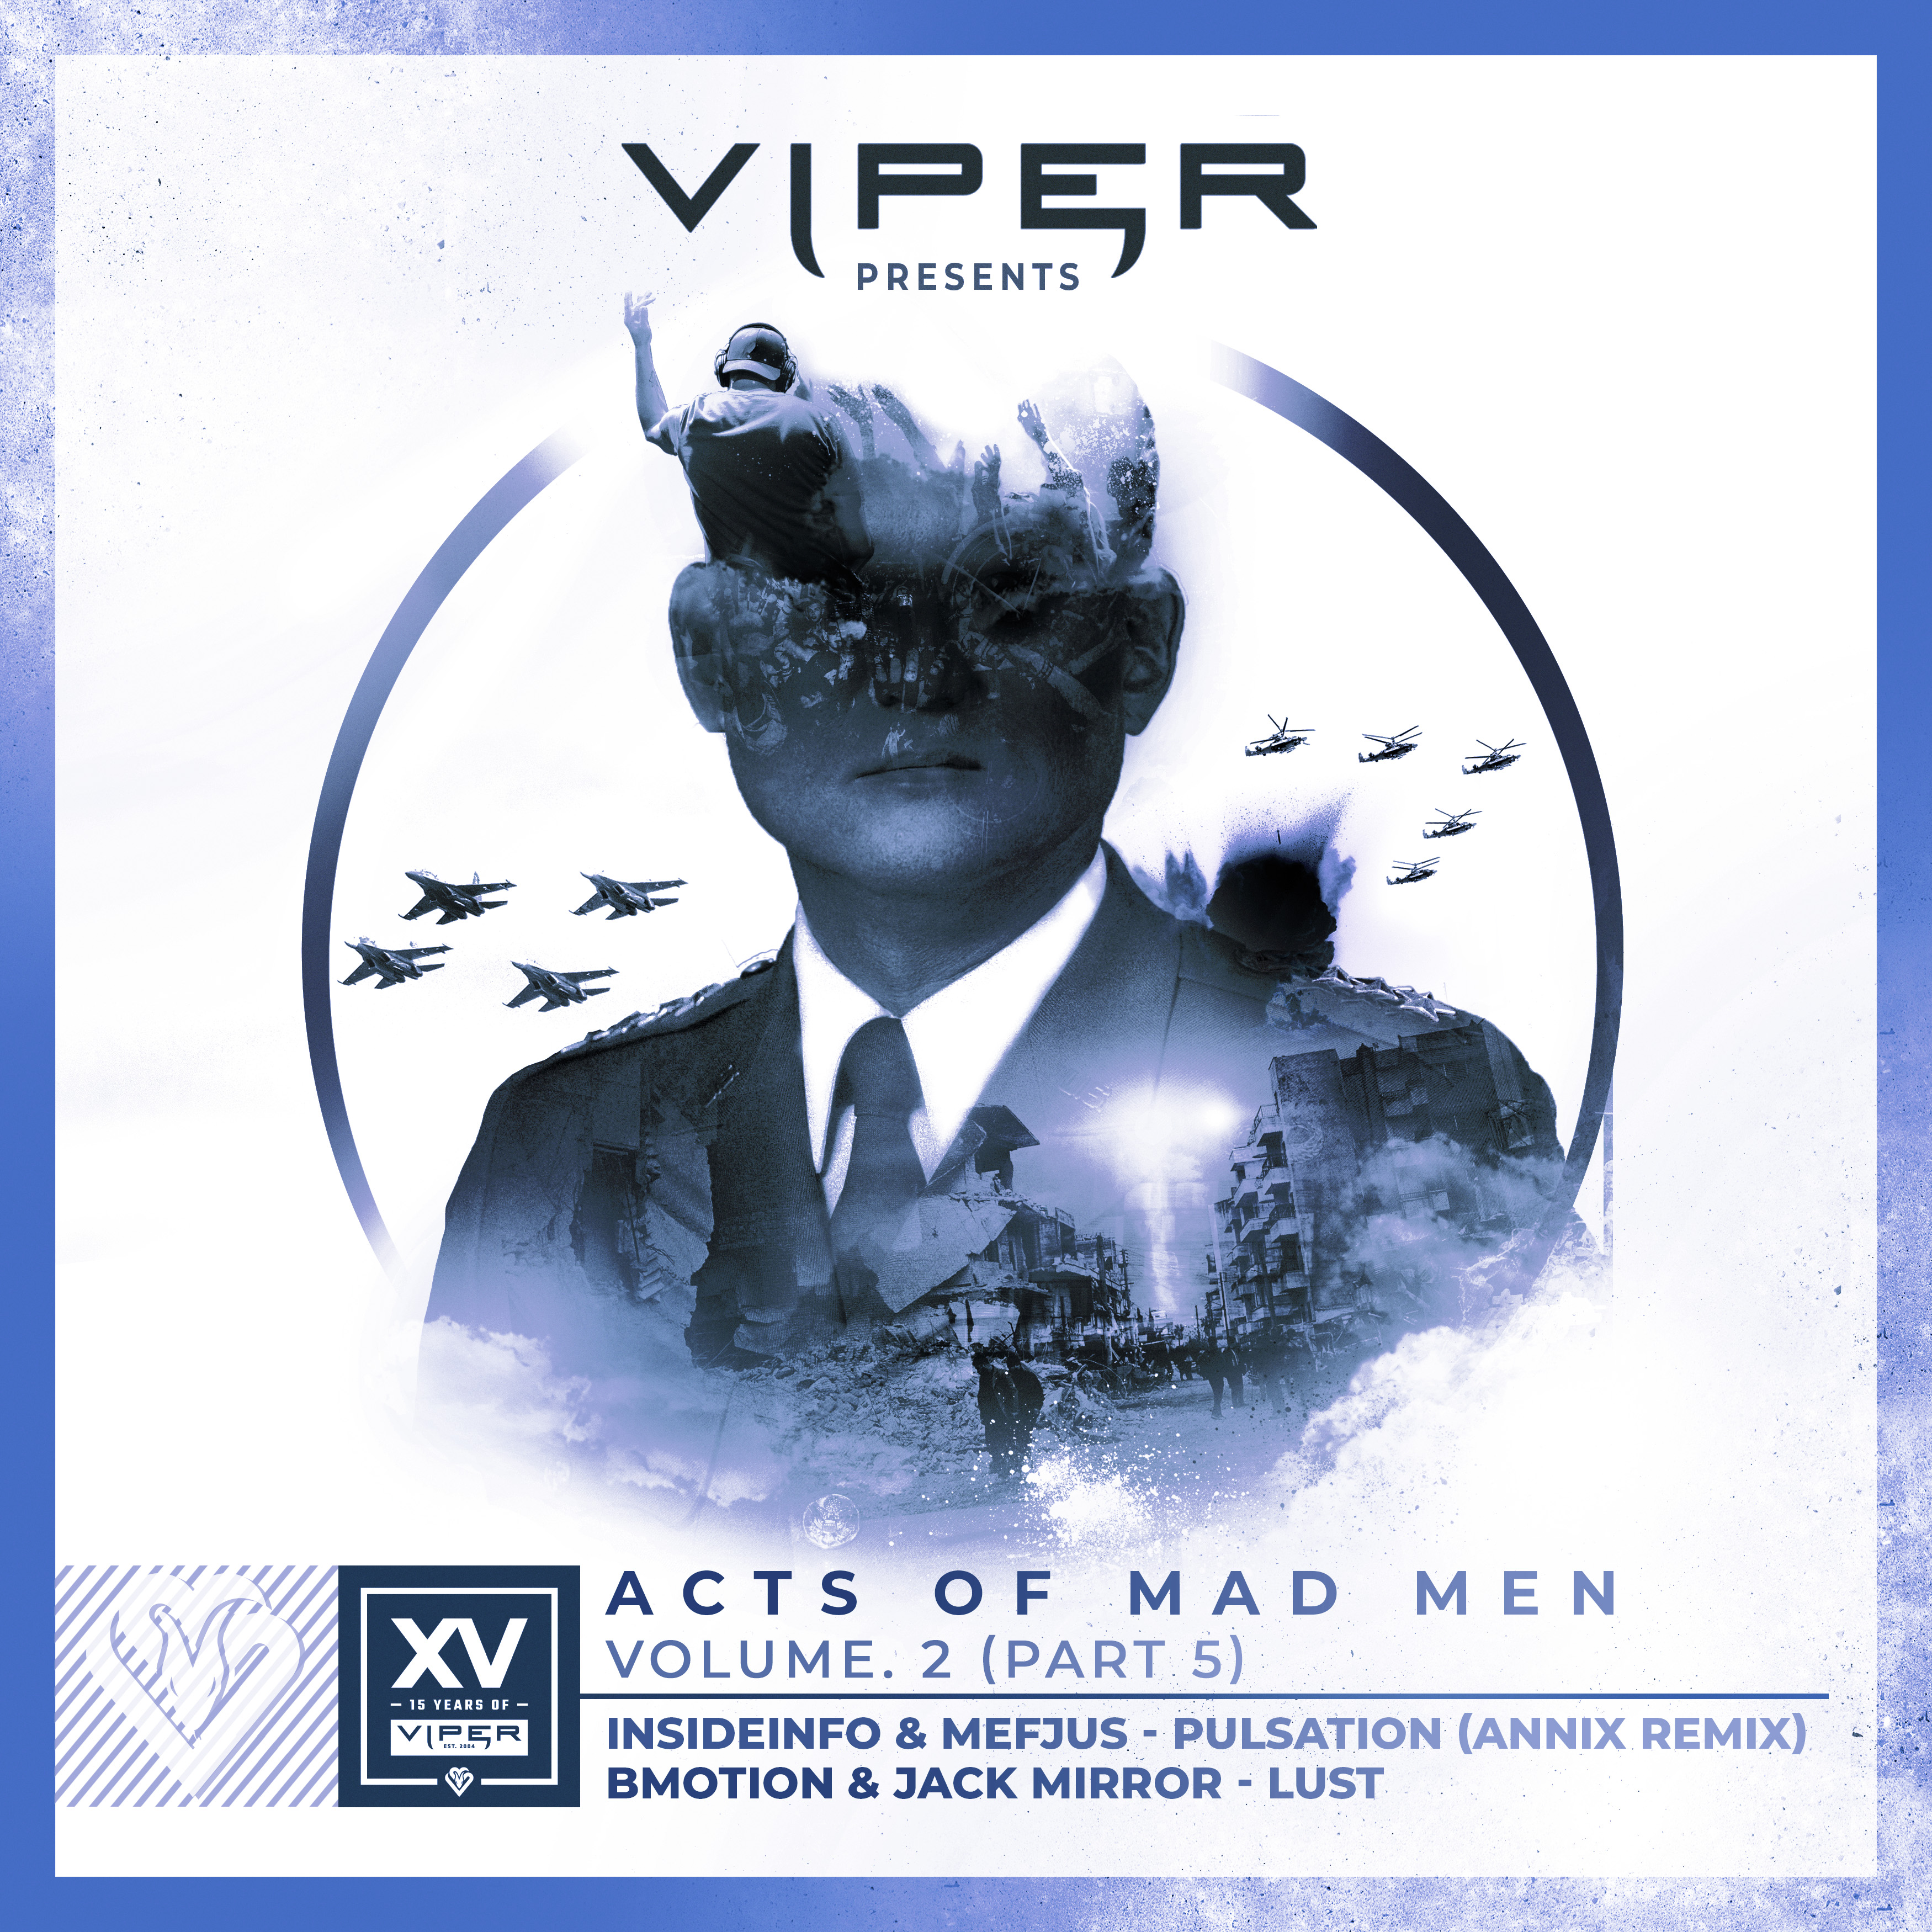 Insideinfo & Mefjus (Annix Remix) / BMotion & Jack Mirror - Acts Of Mad Men Vol. 2 (Part 5)